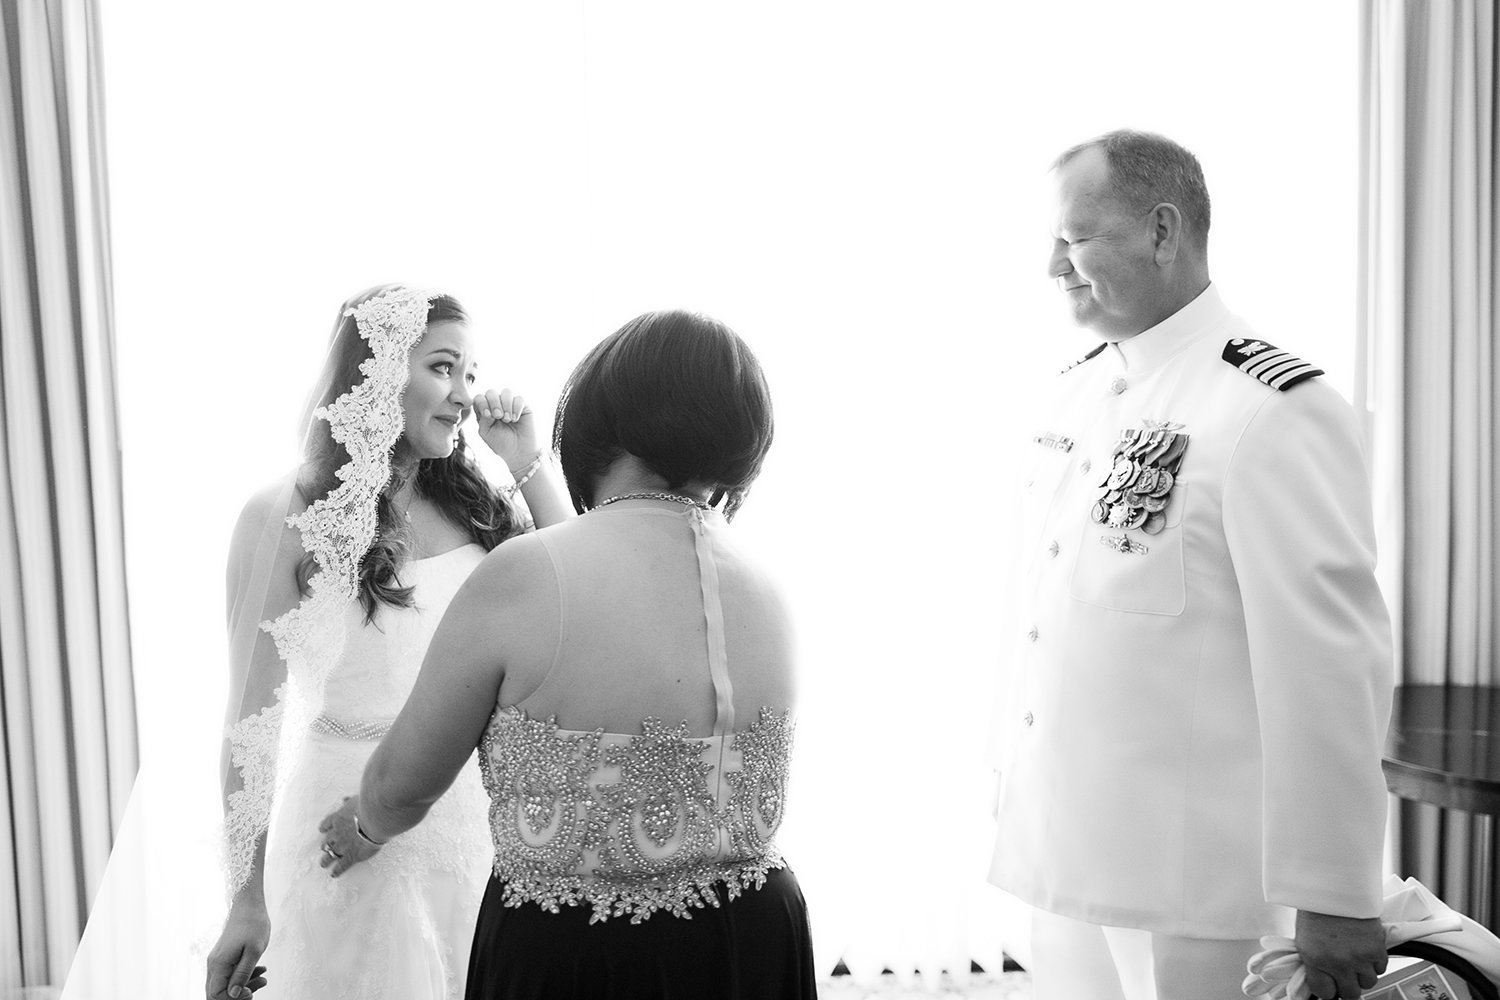 Beautiful Father Daughter Moment on Wedding Day